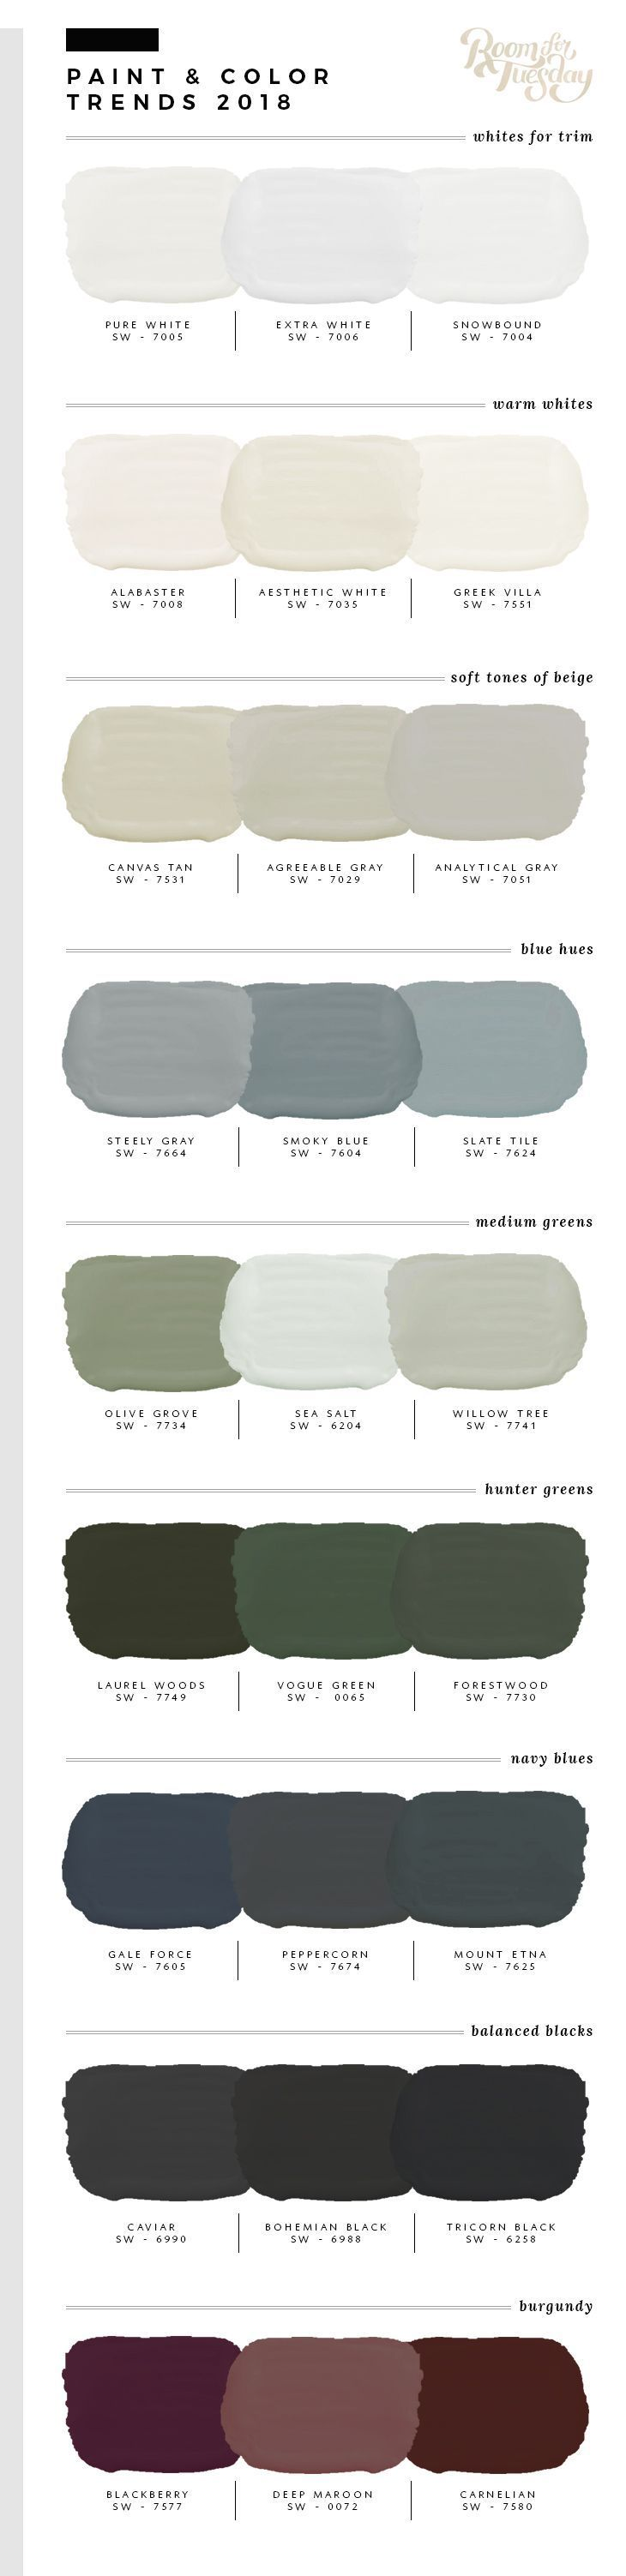 Predicted Paint Colors for 2018 - roomfortuesday.com